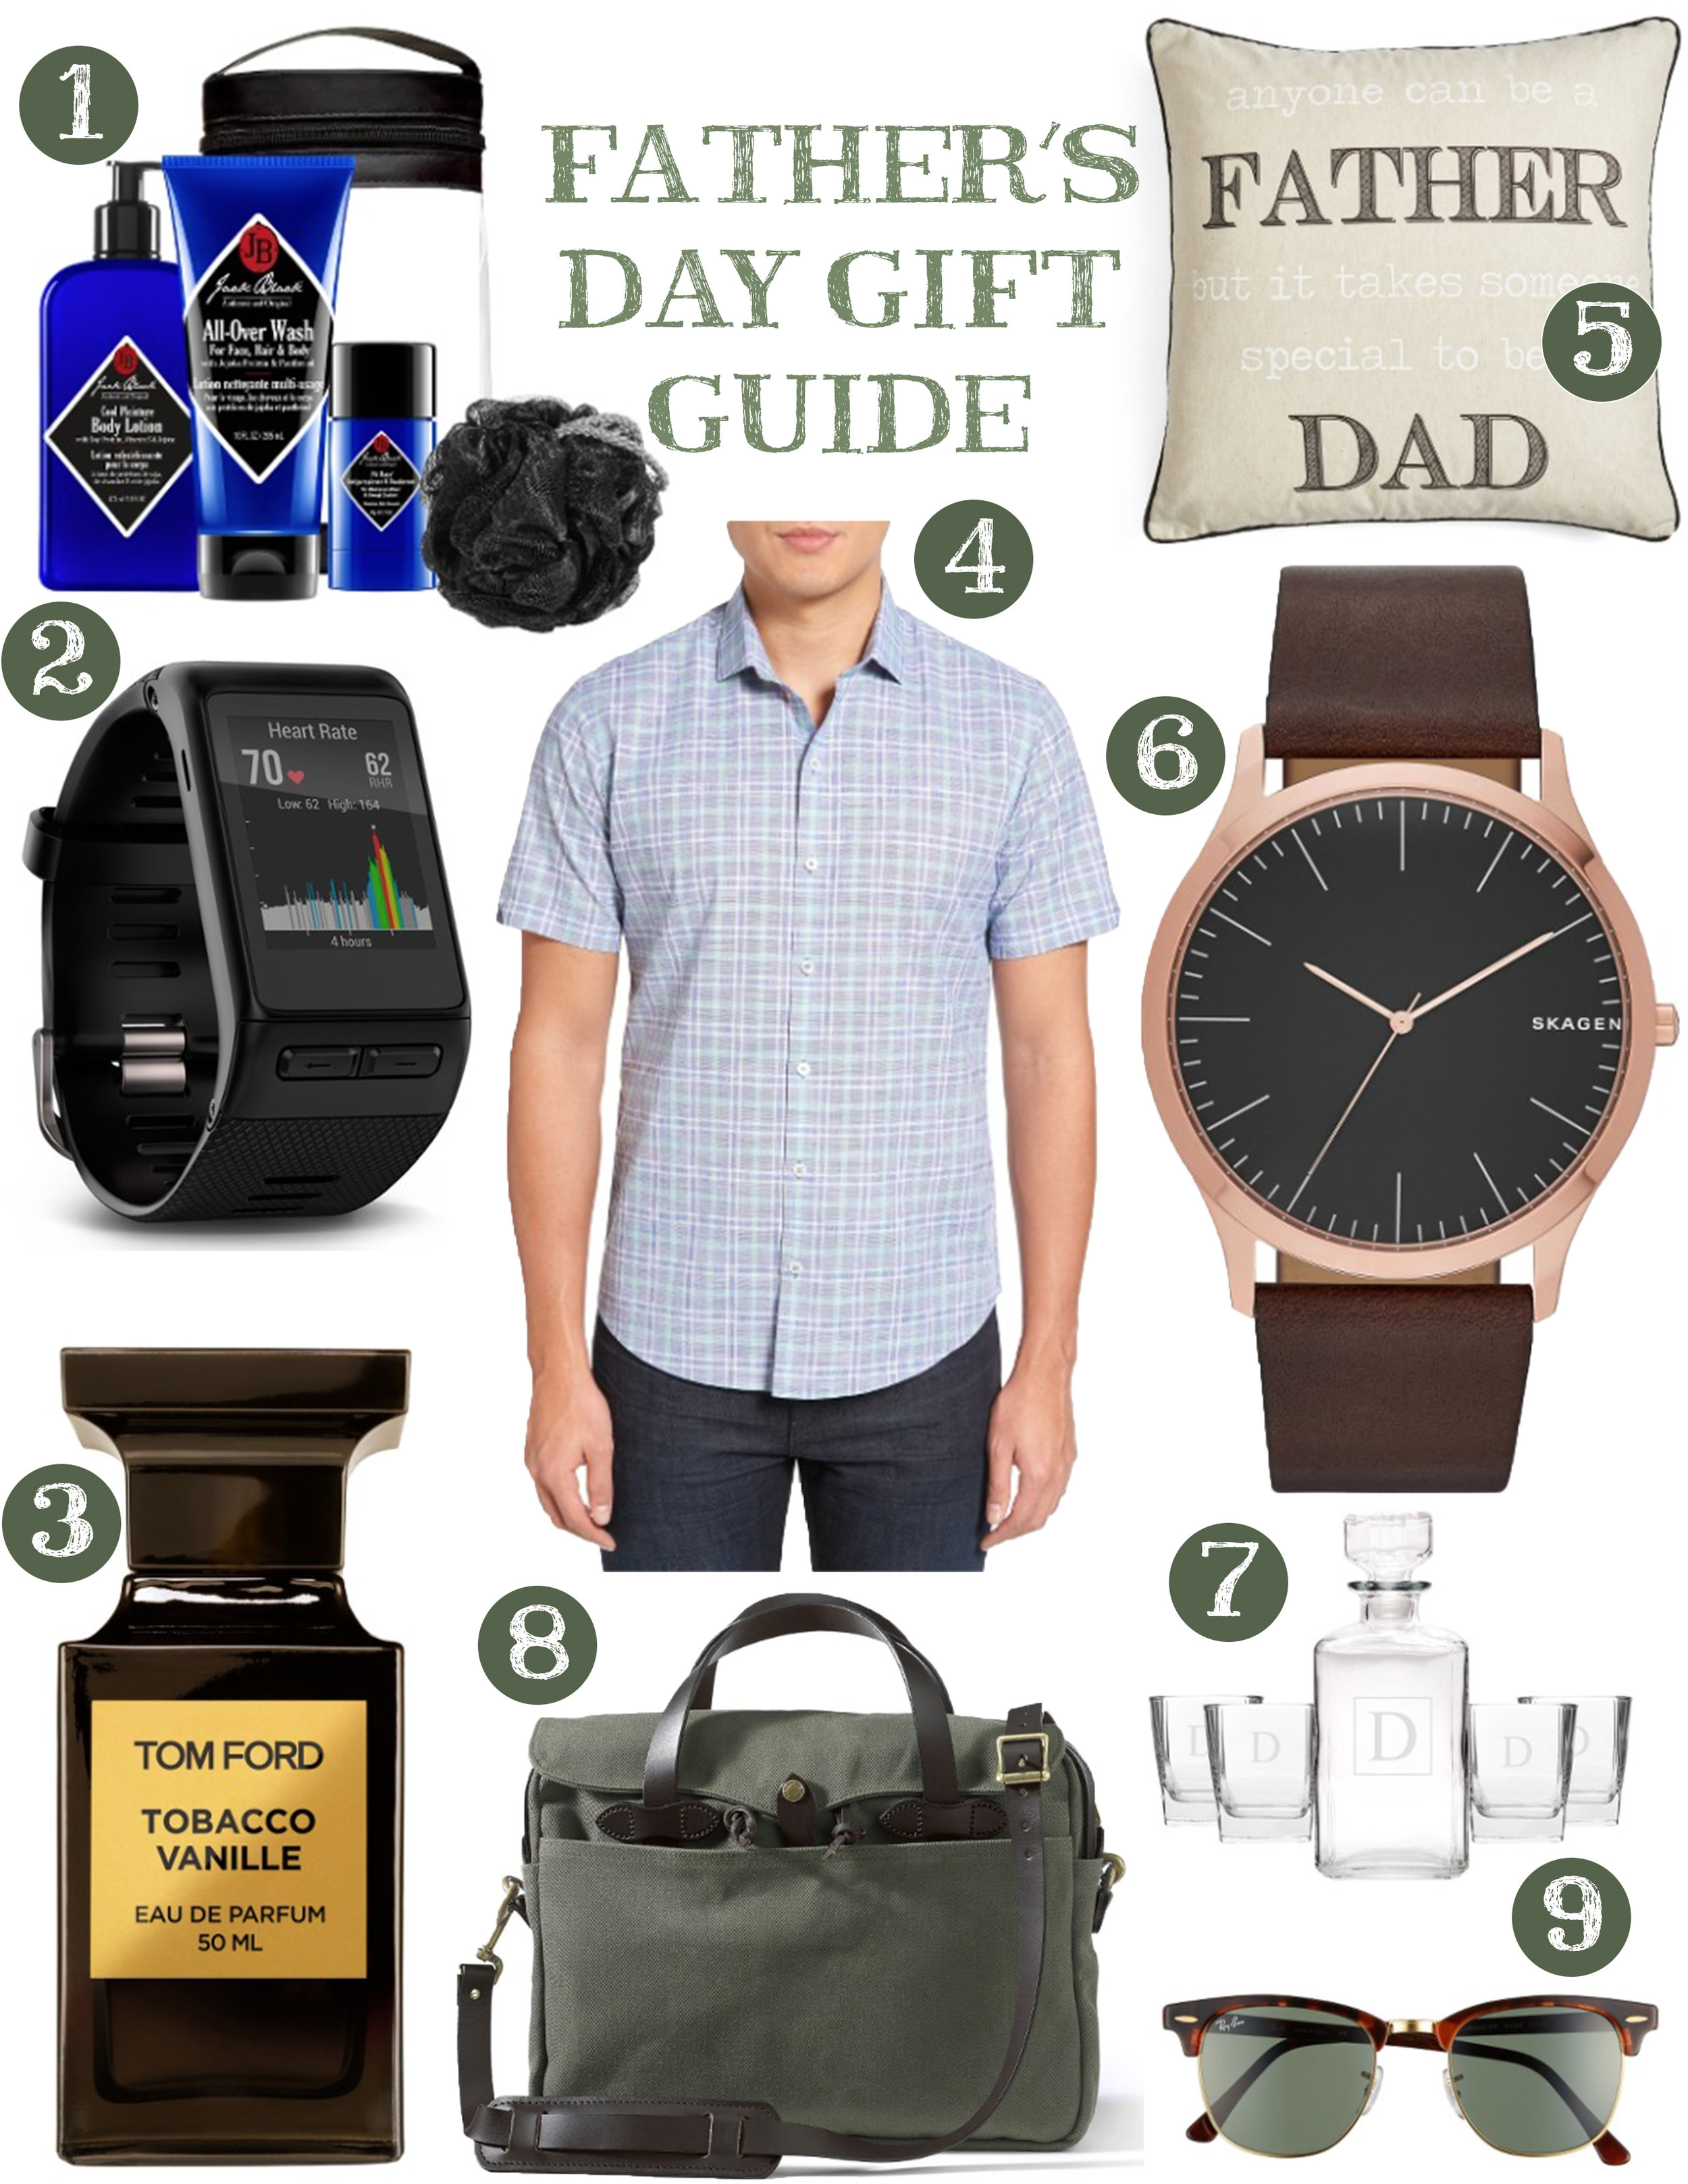 bb-fathers-day-gift-guide.jpg